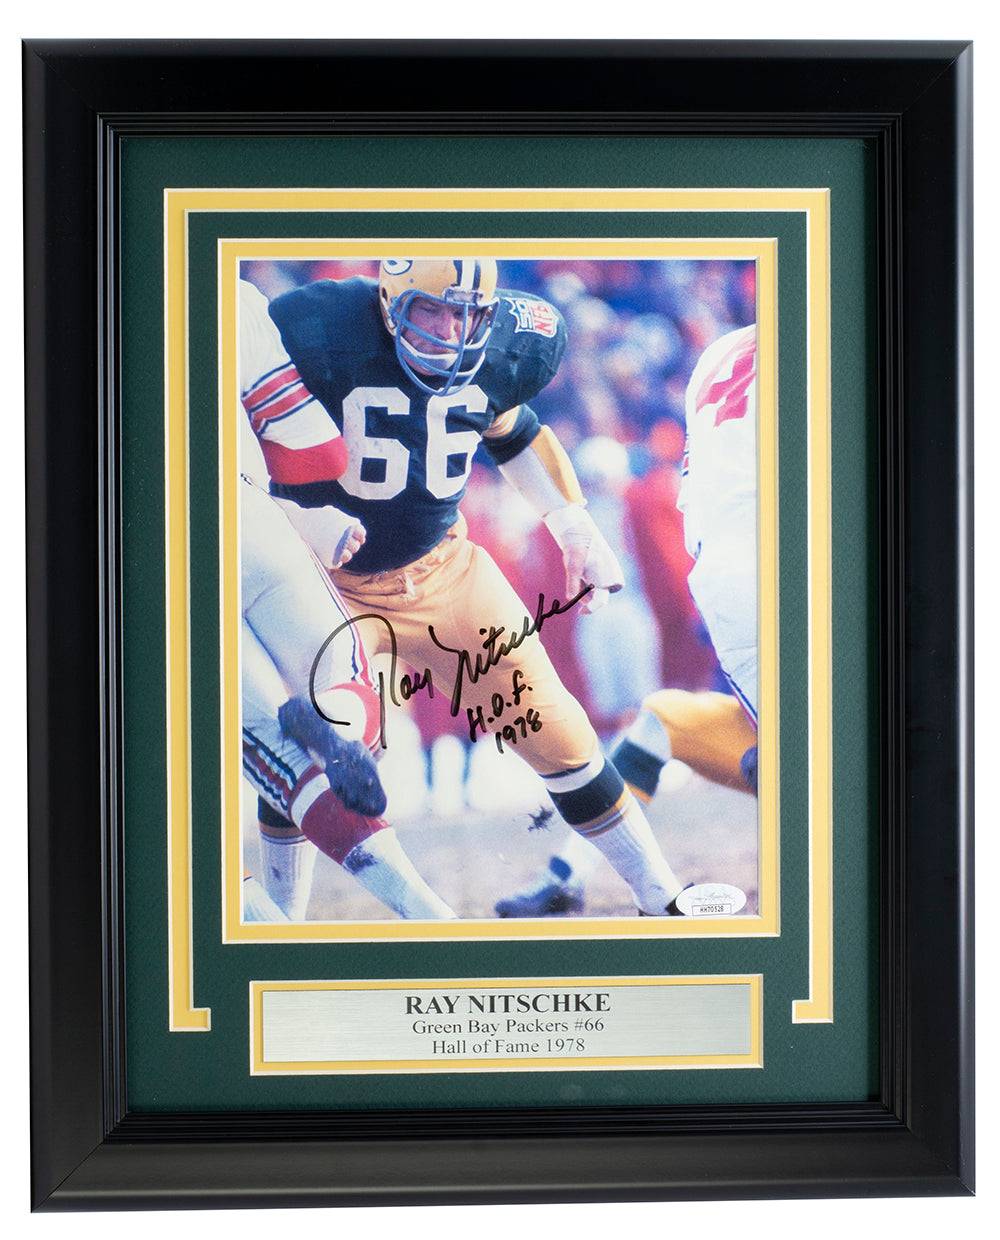 Ray Nitschke Green Bay Packers Signed Framed 8x10 Photo HOF 1978 JSA HH70528 PSM-Powers Sports Memorabilia